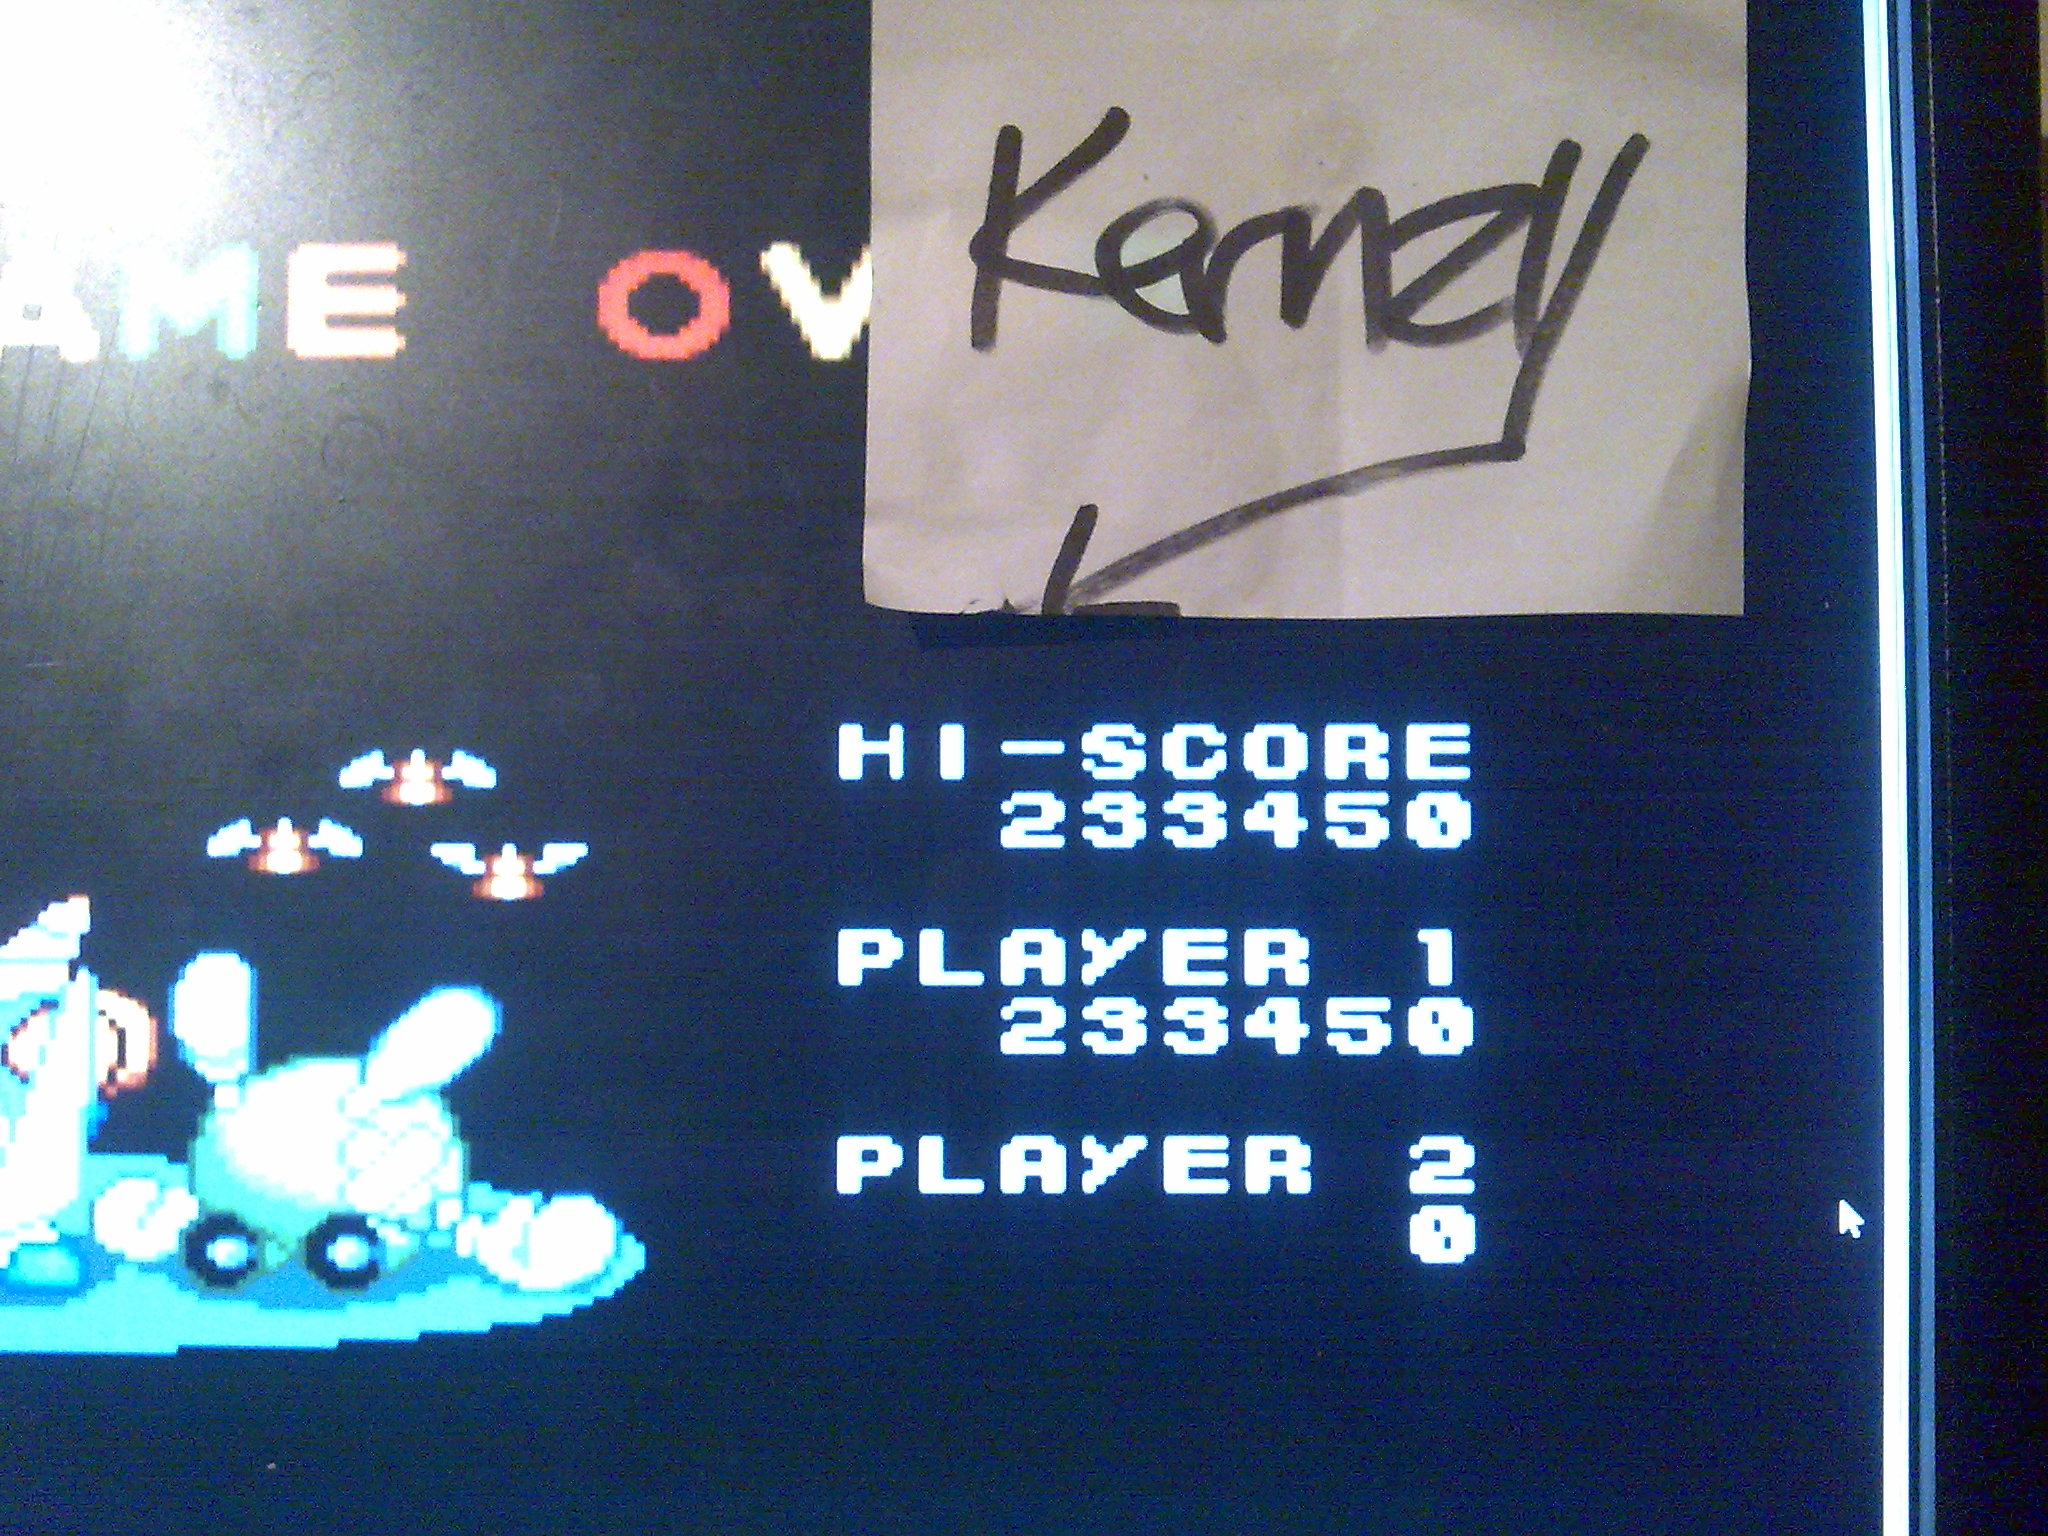 kernzy: Detana!! TwinBee [Rank Normal] (TurboGrafx-16/PC Engine Emulated) 233,450 points on 2014-10-09 15:04:46